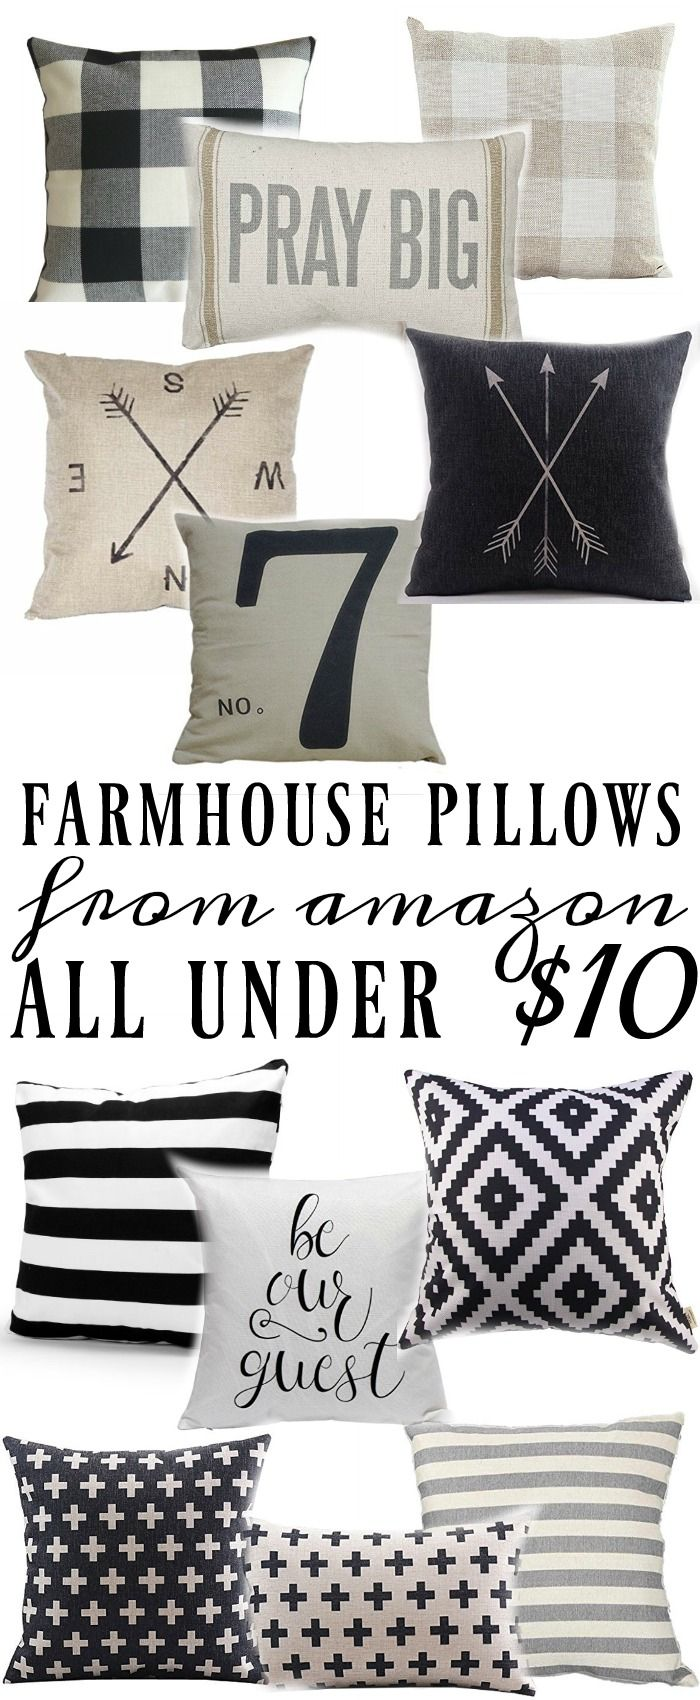 Cheap Decorative Pillows Under $10 Endearing Farmhouse Style Pillows All Under $10  Farmhouse Style Pillows And